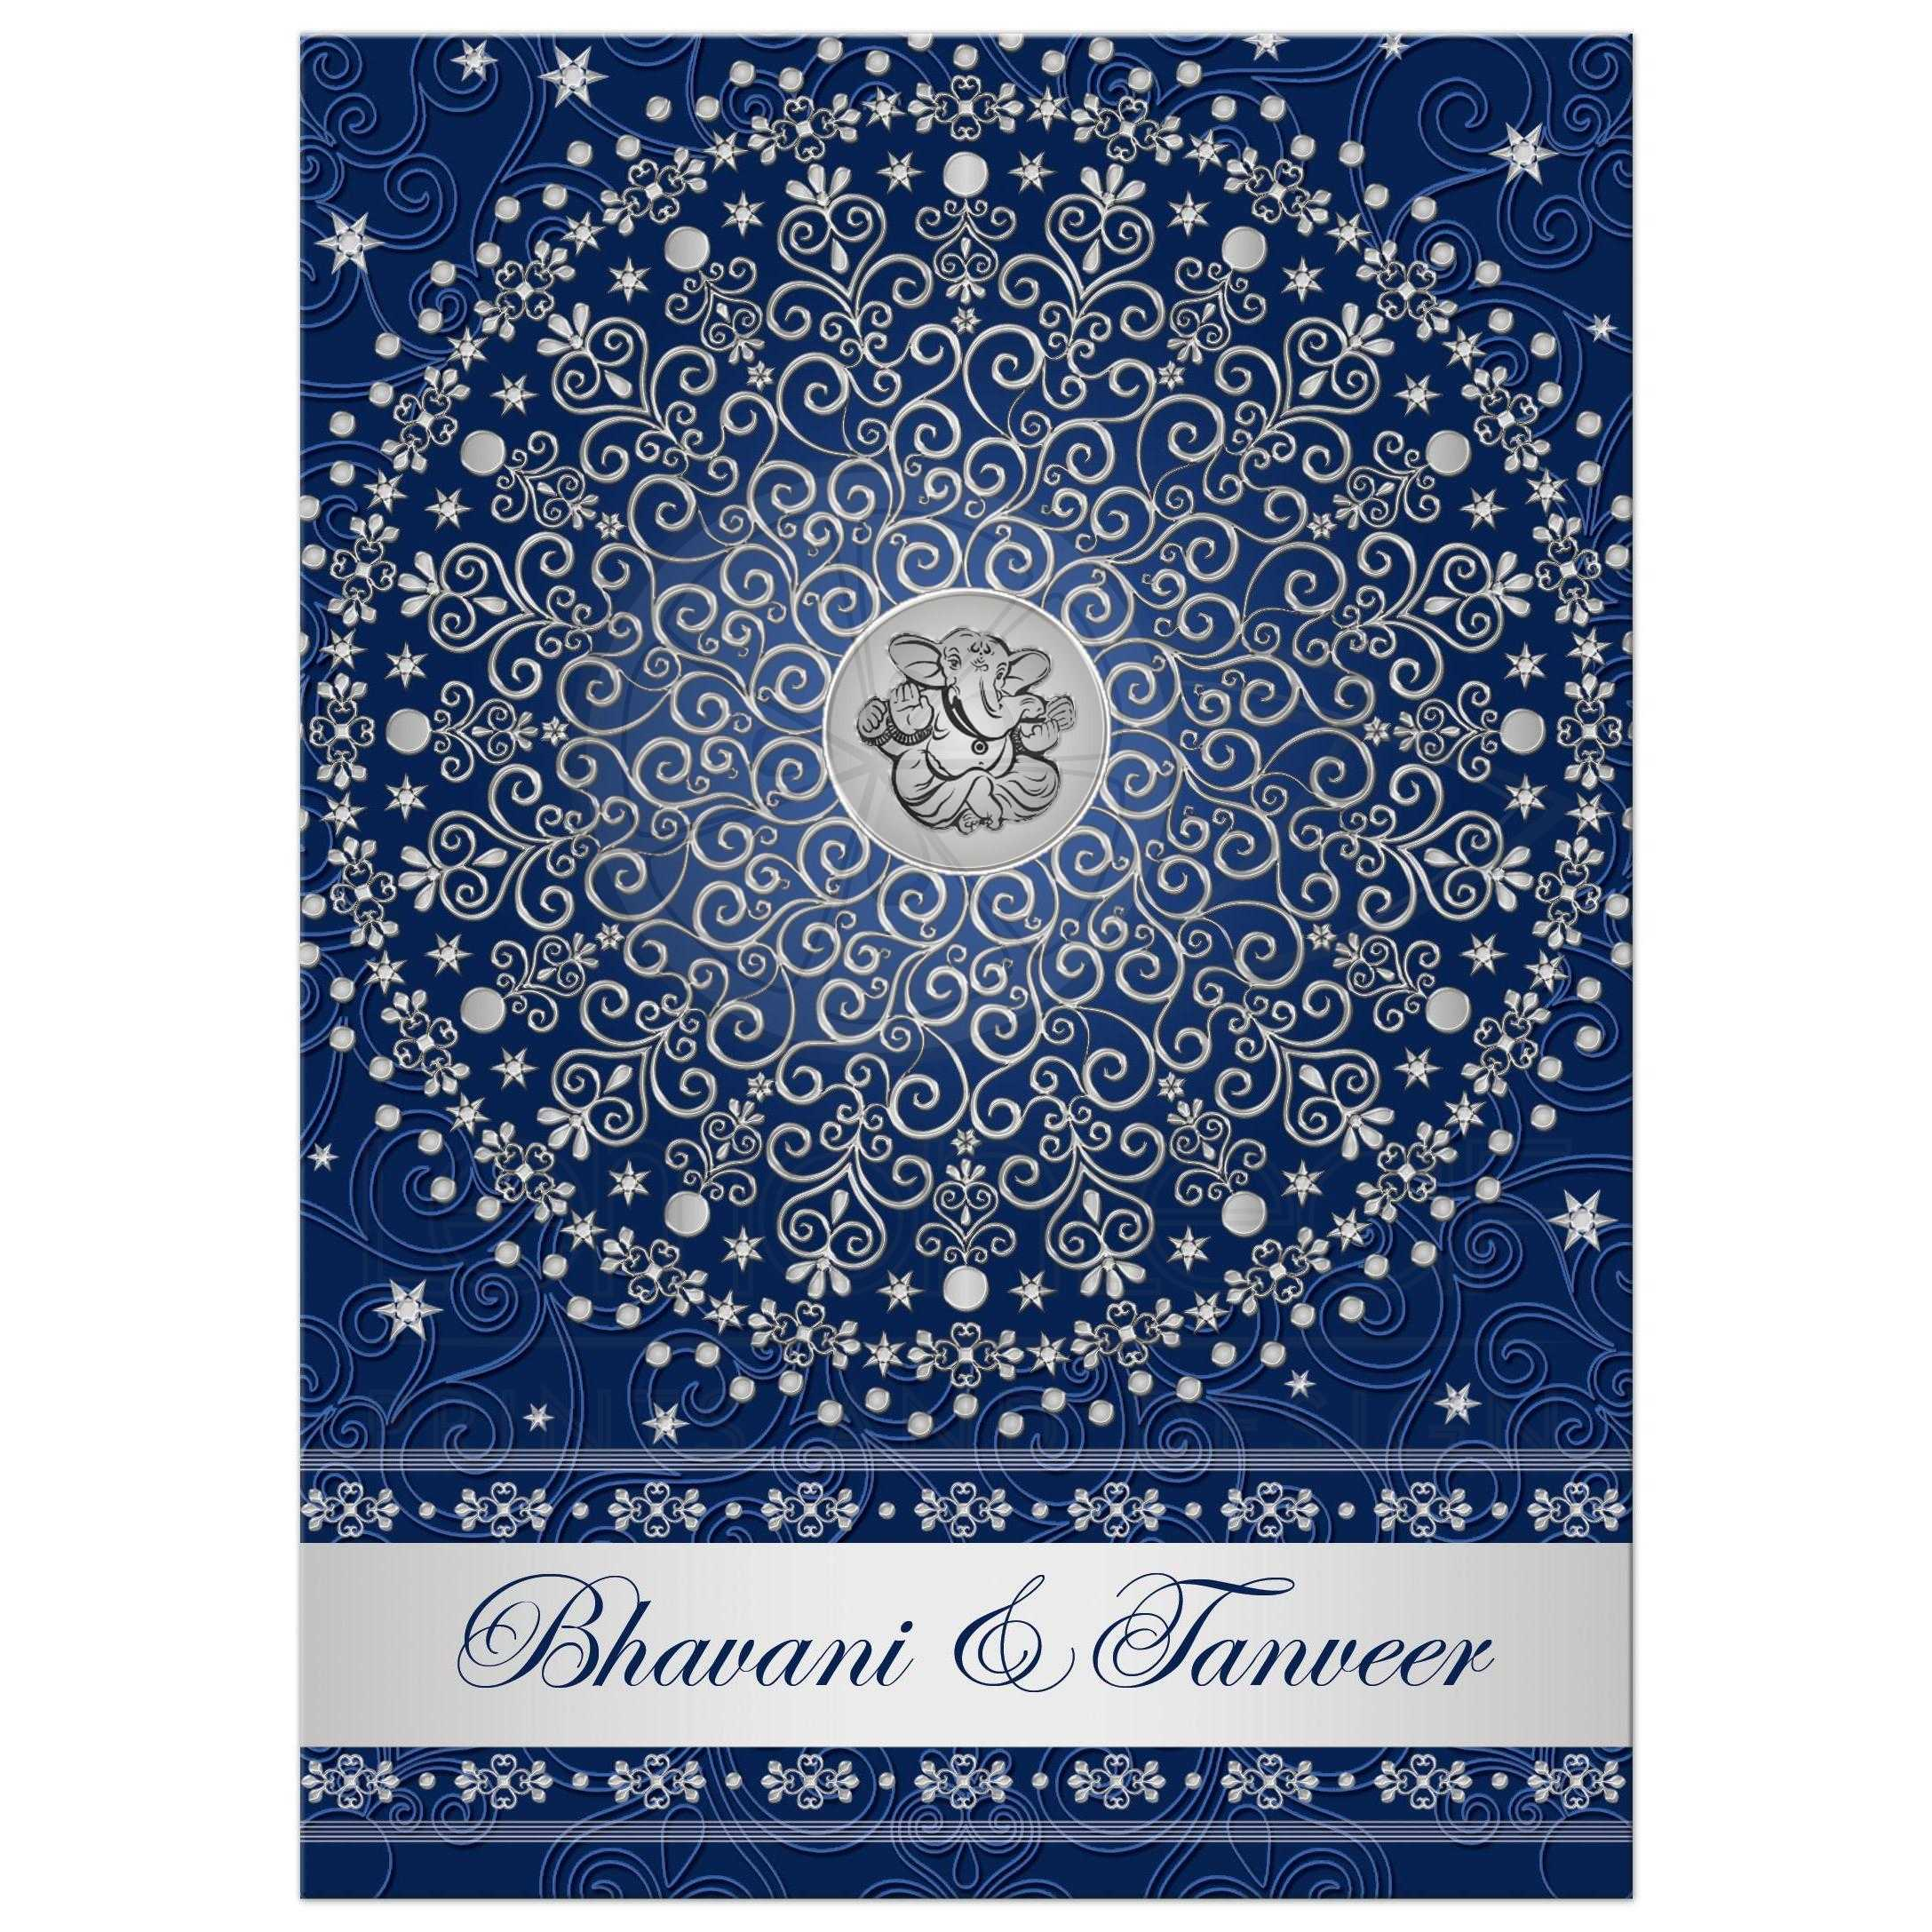 Best Navy Blue And Silver Wedding Invitation With Scrolls, Stars, Dots, ...